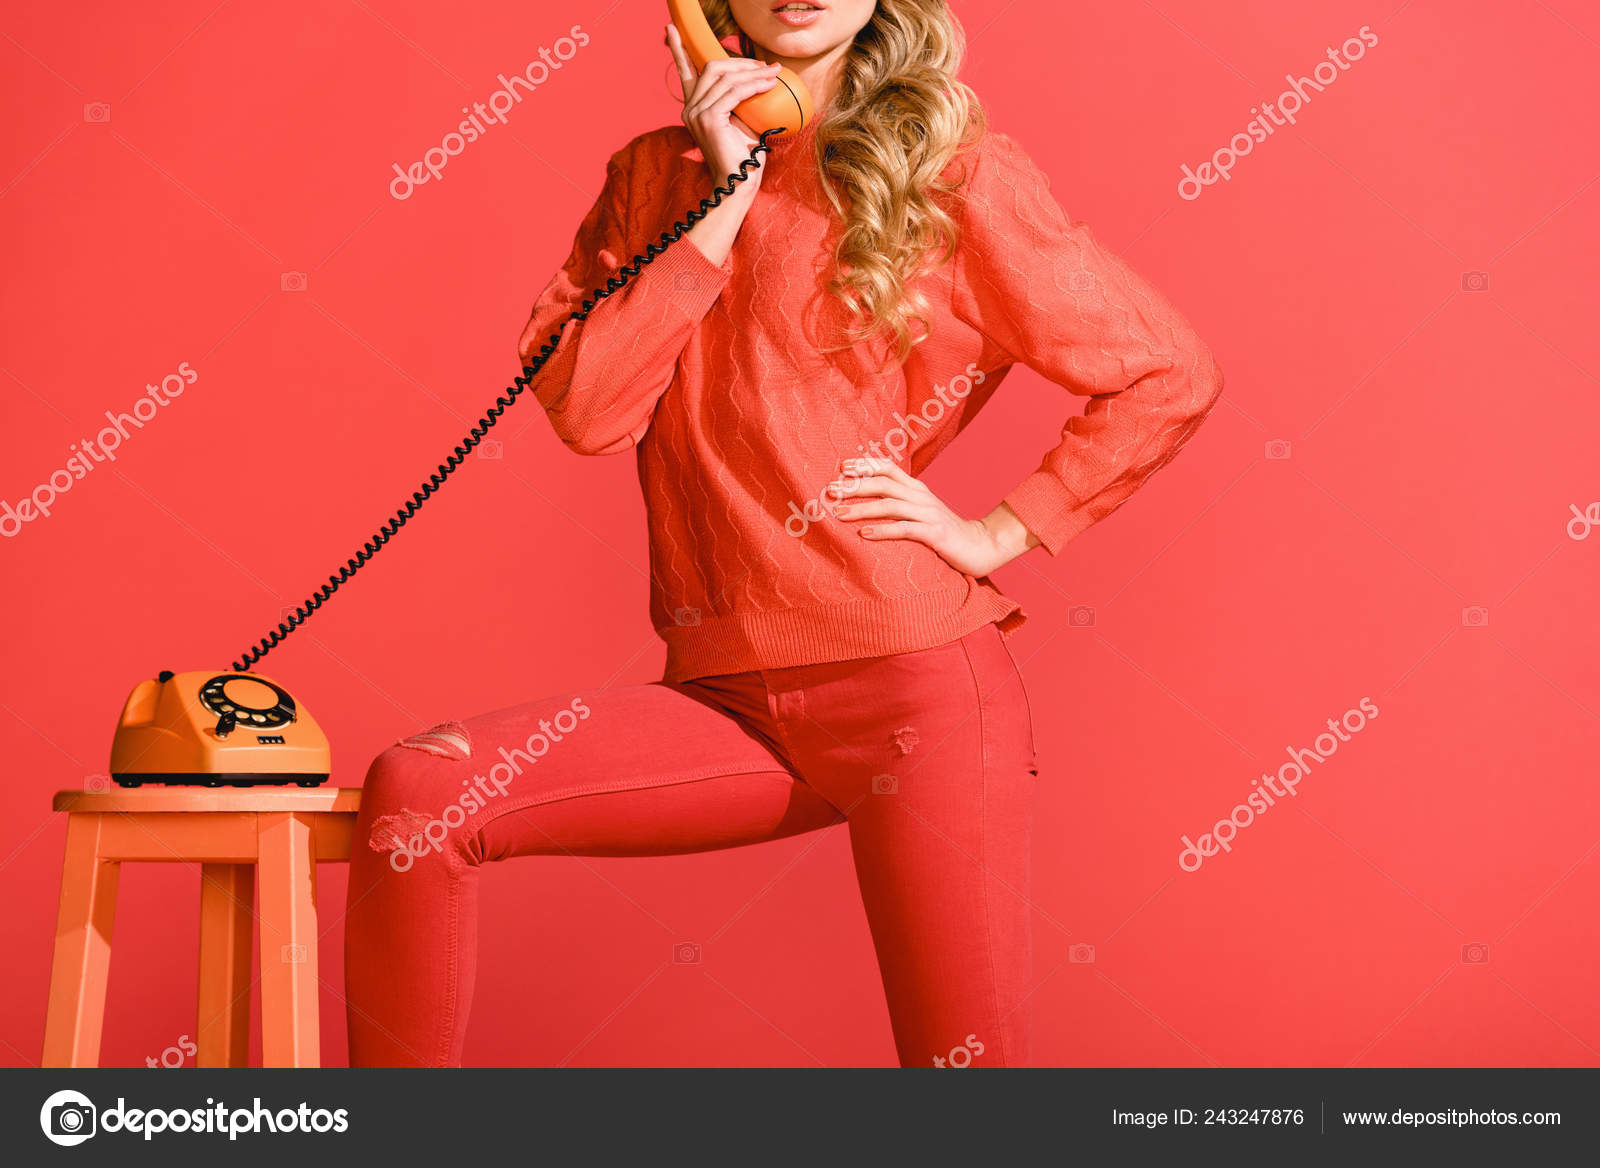 Cropped View Girl Posing Retro Rotary Telephone Isolated